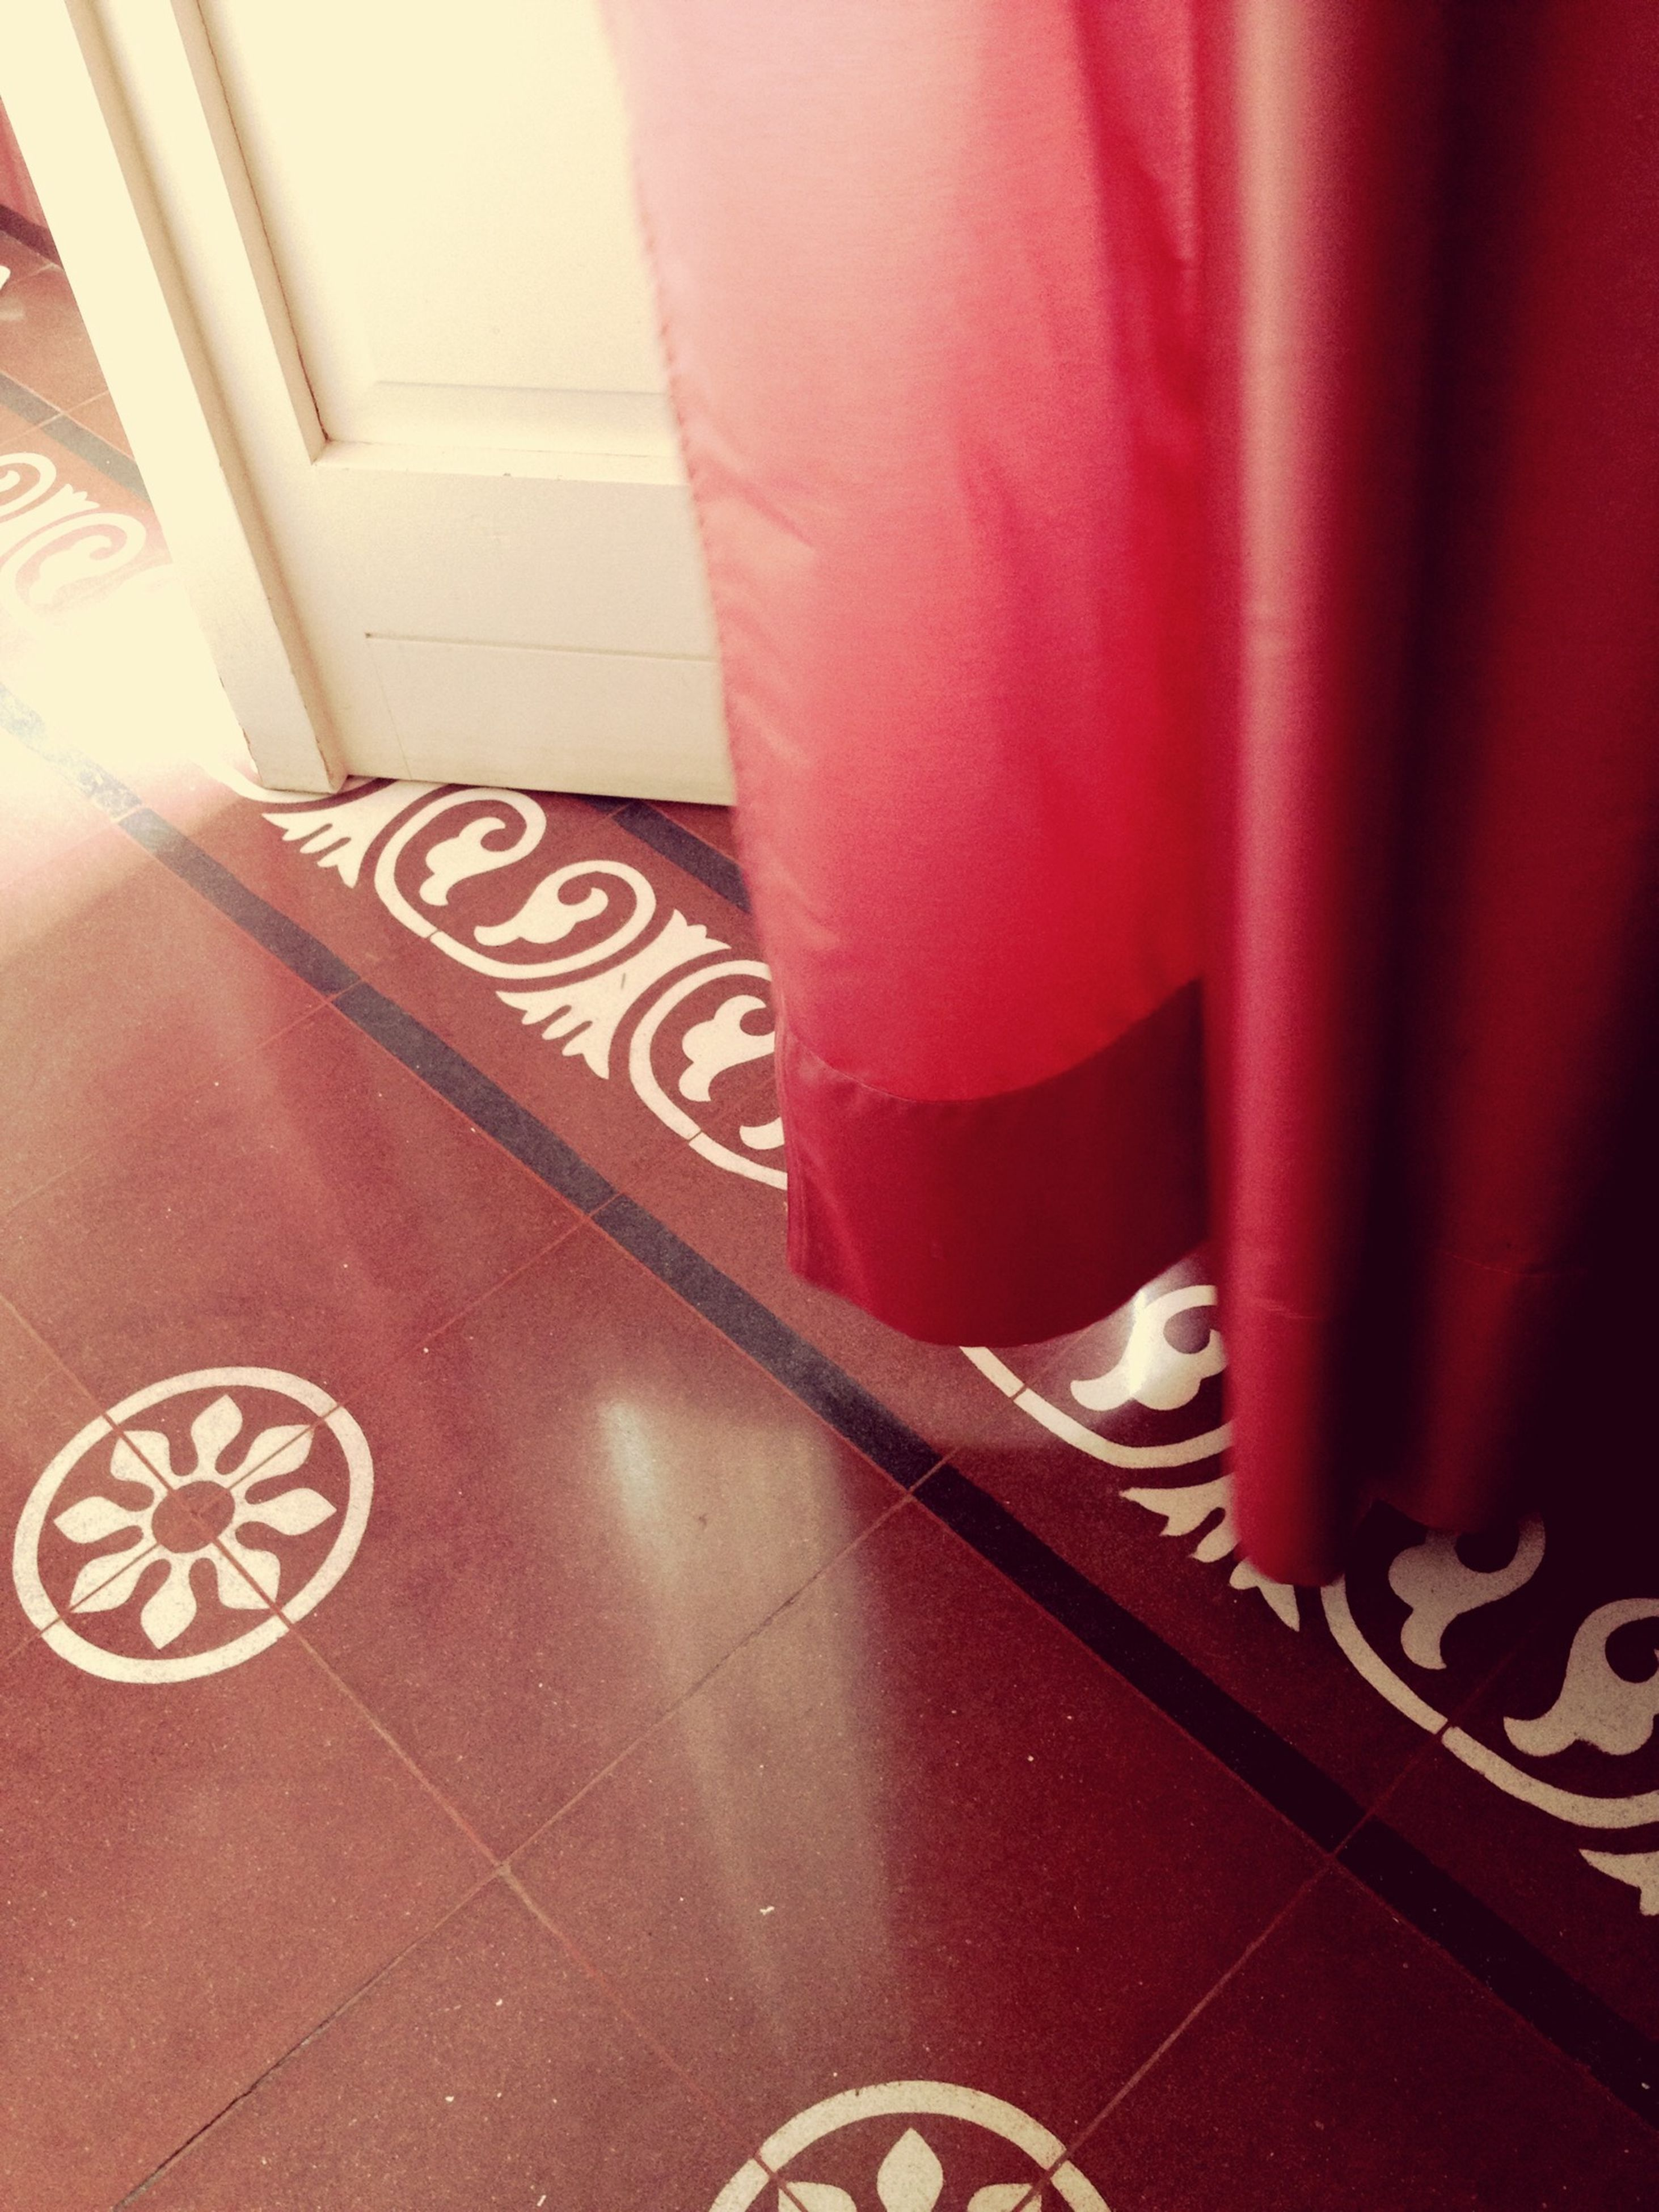 indoors, text, communication, red, western script, low section, person, part of, non-western script, tiled floor, lifestyles, number, close-up, men, unrecognizable person, wall - building feature